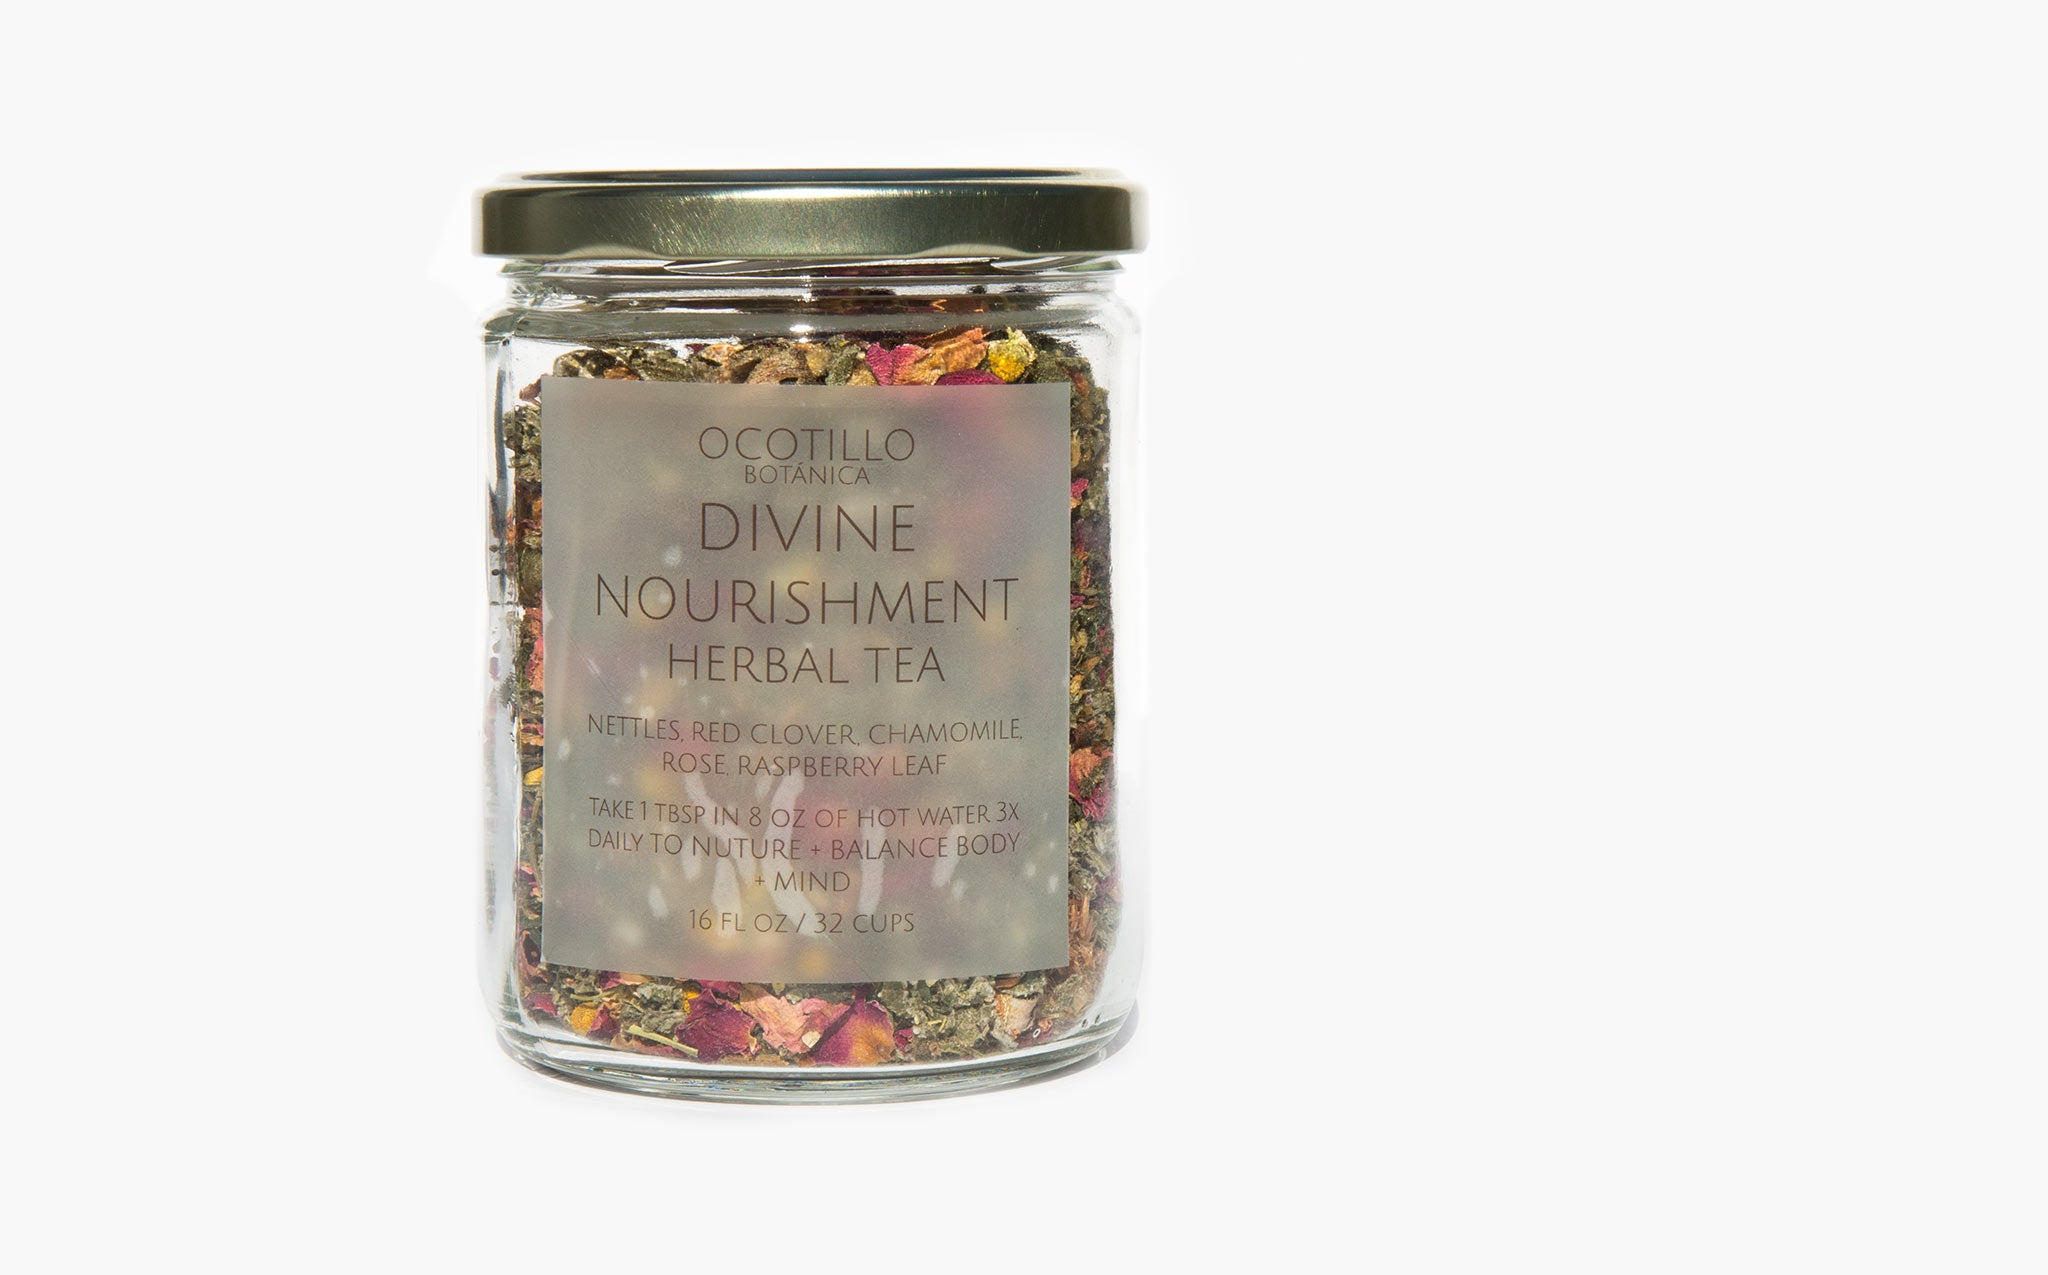 Ocotillo Botanica Divine Nourishment Herbal Tea